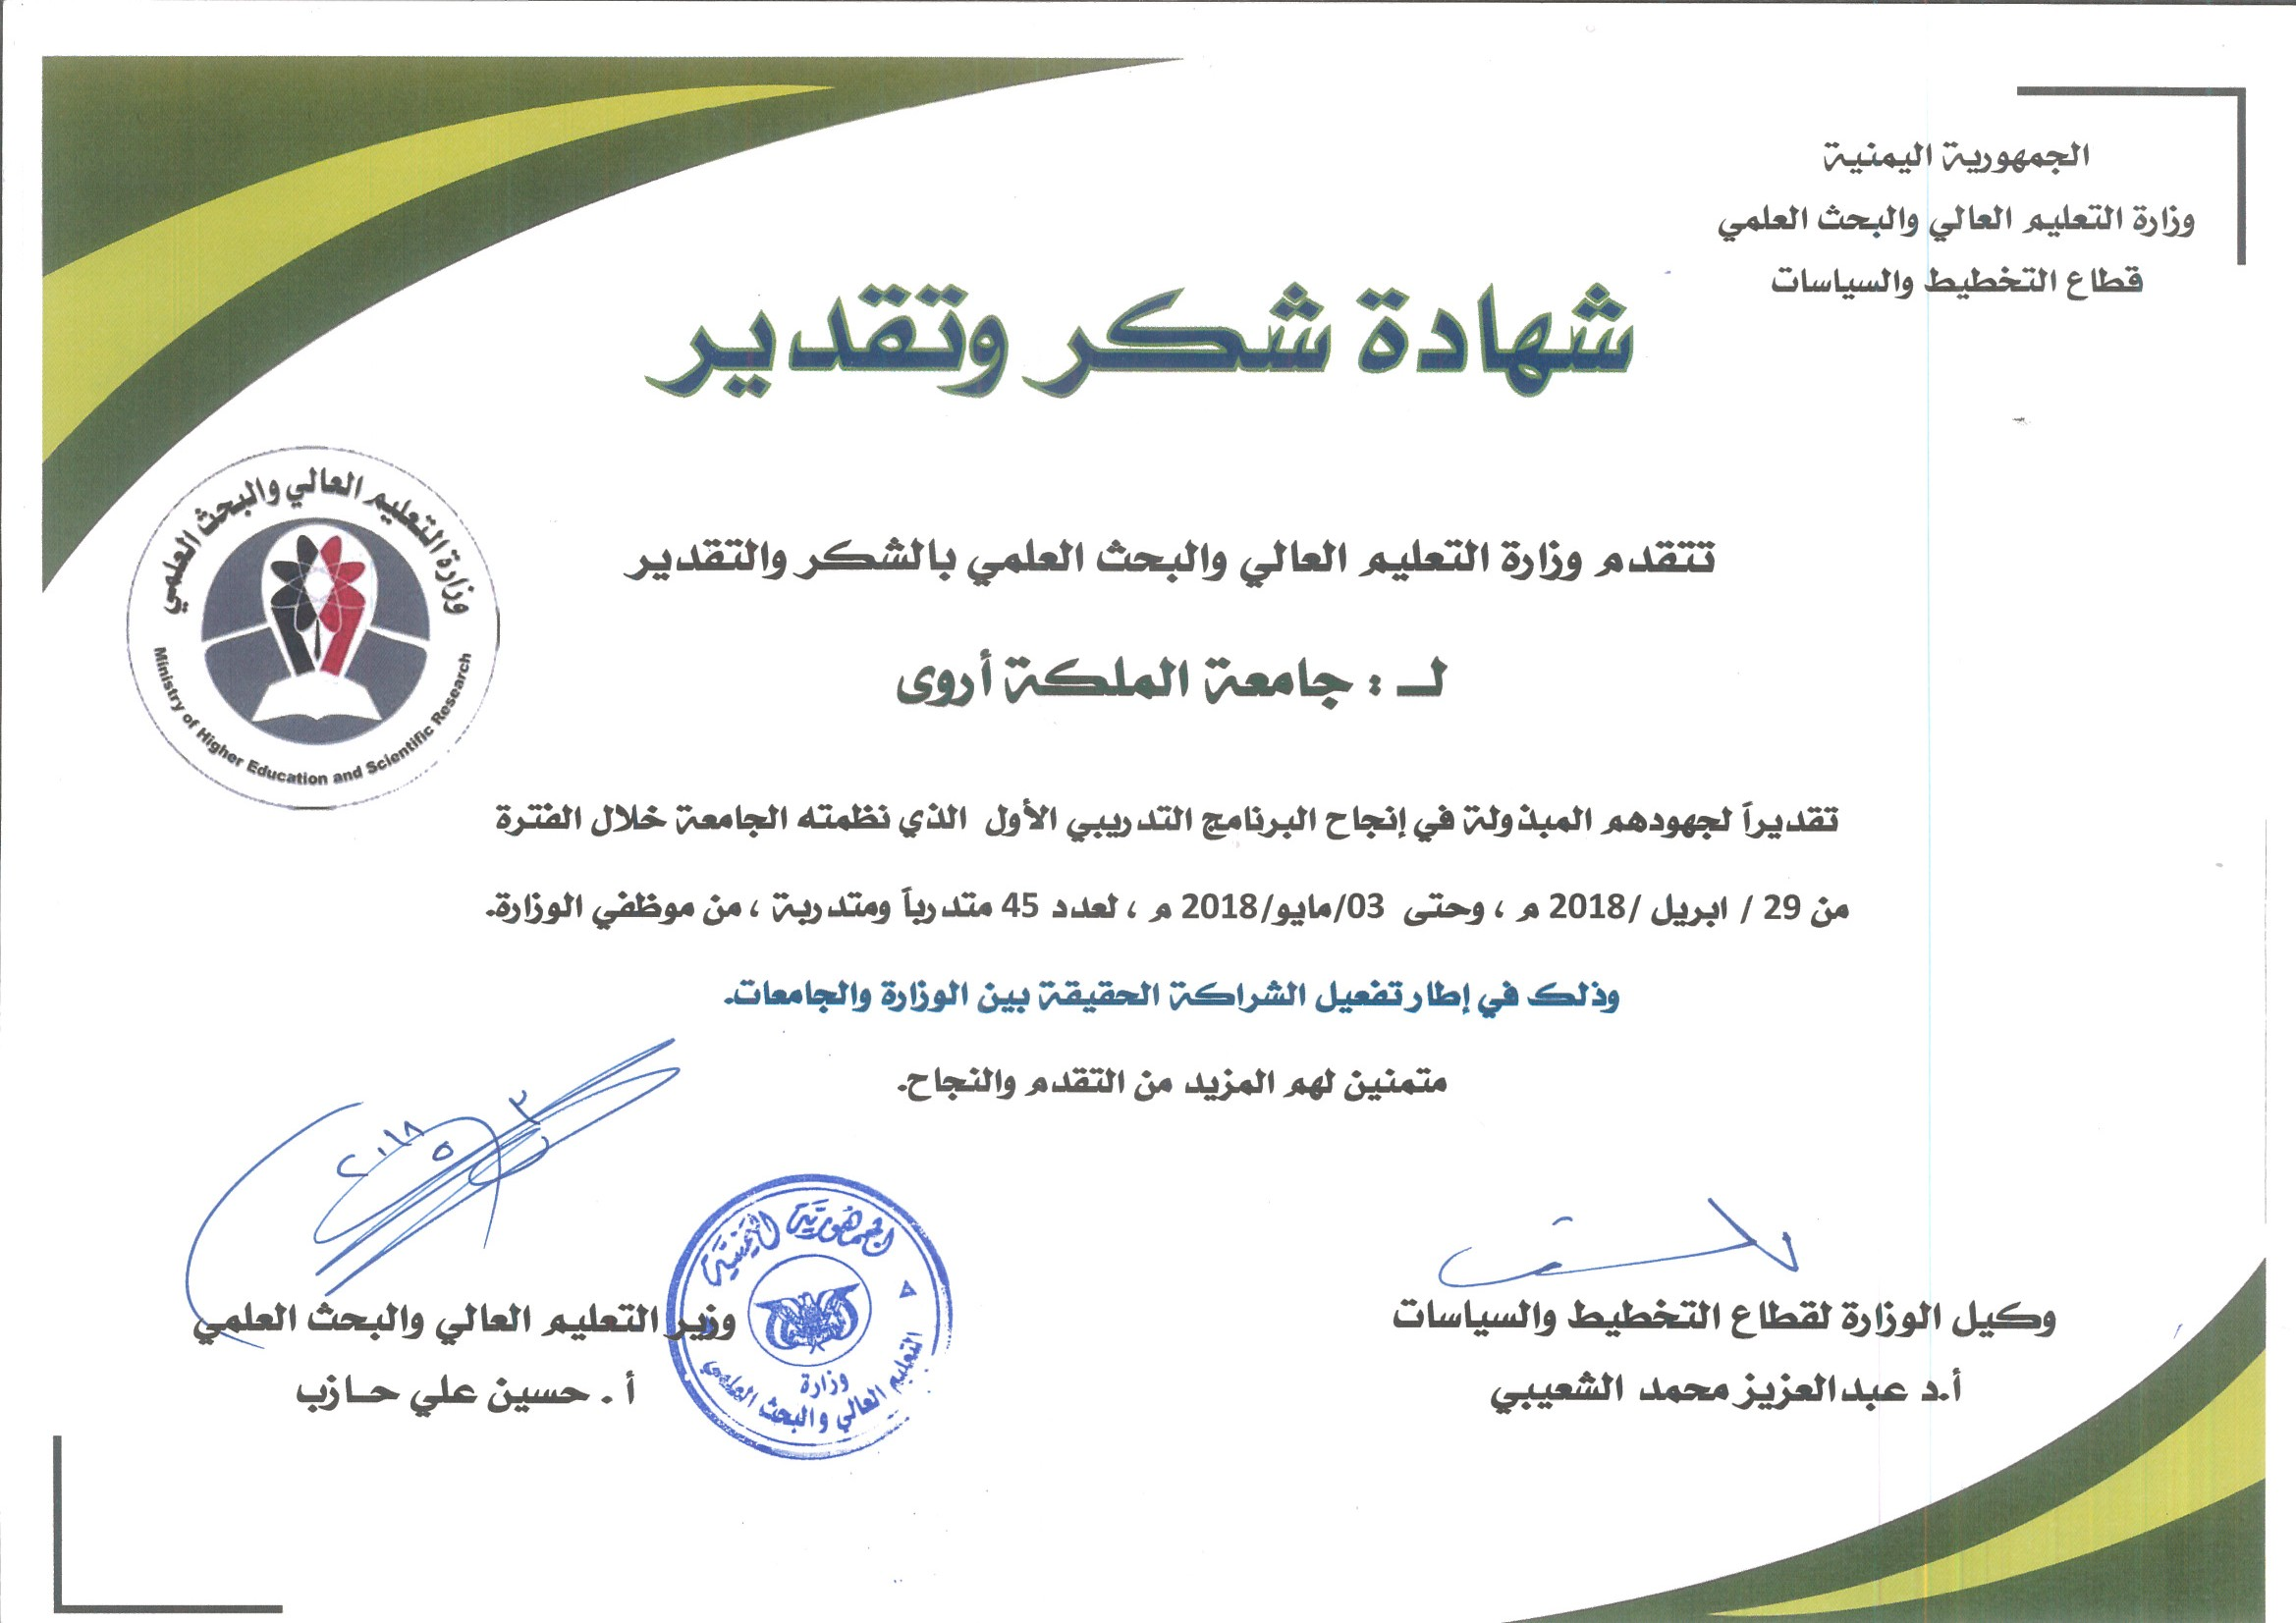 Certificates obtained by the university